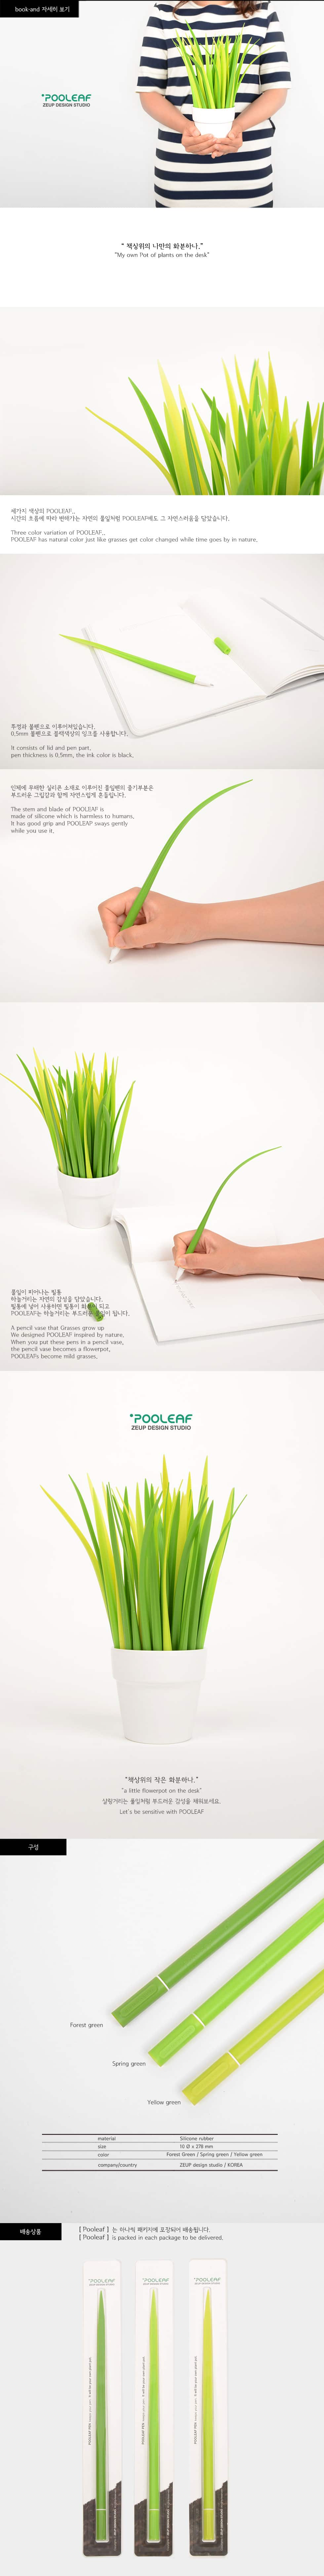 office-plant-green-pens